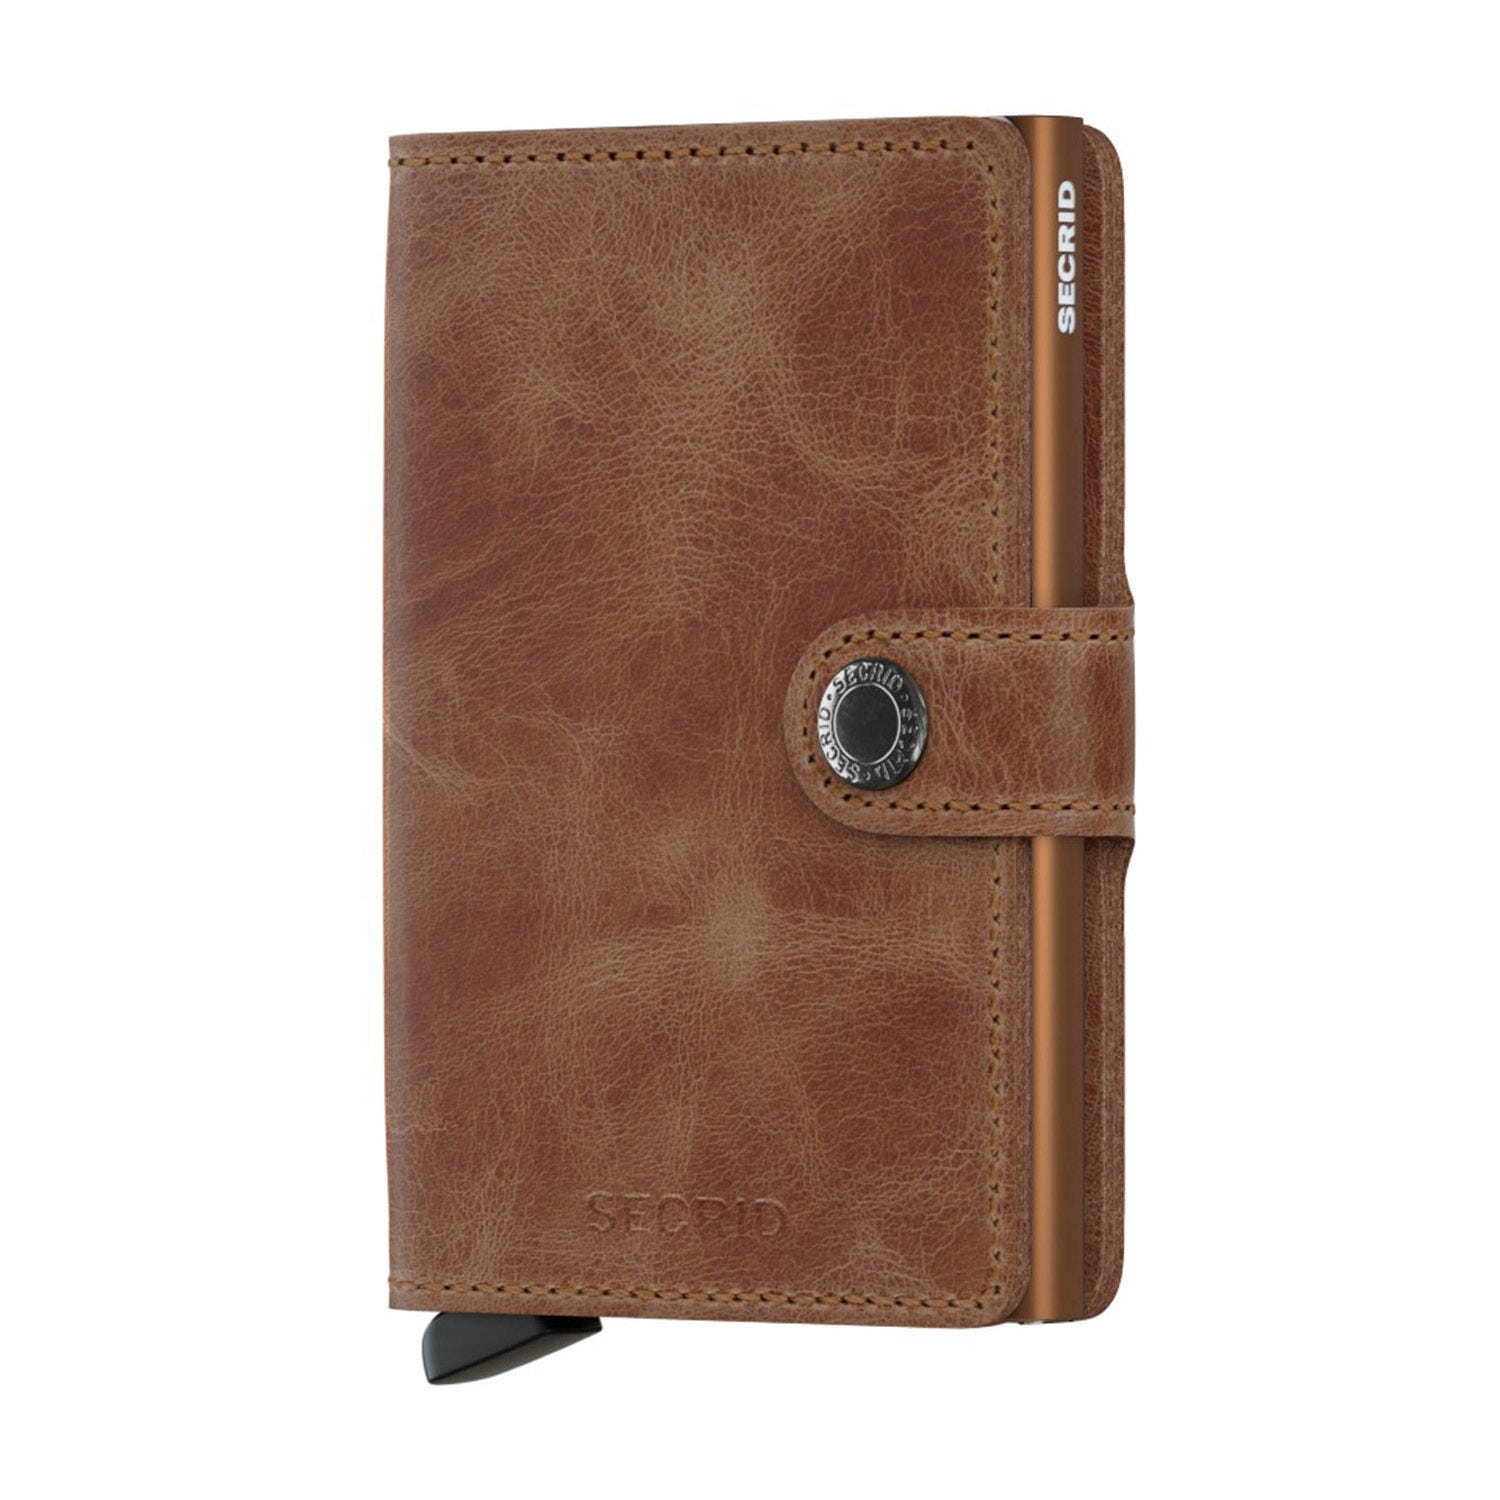 Secrid Vintage Cognac-Rust Leather Miniwallet